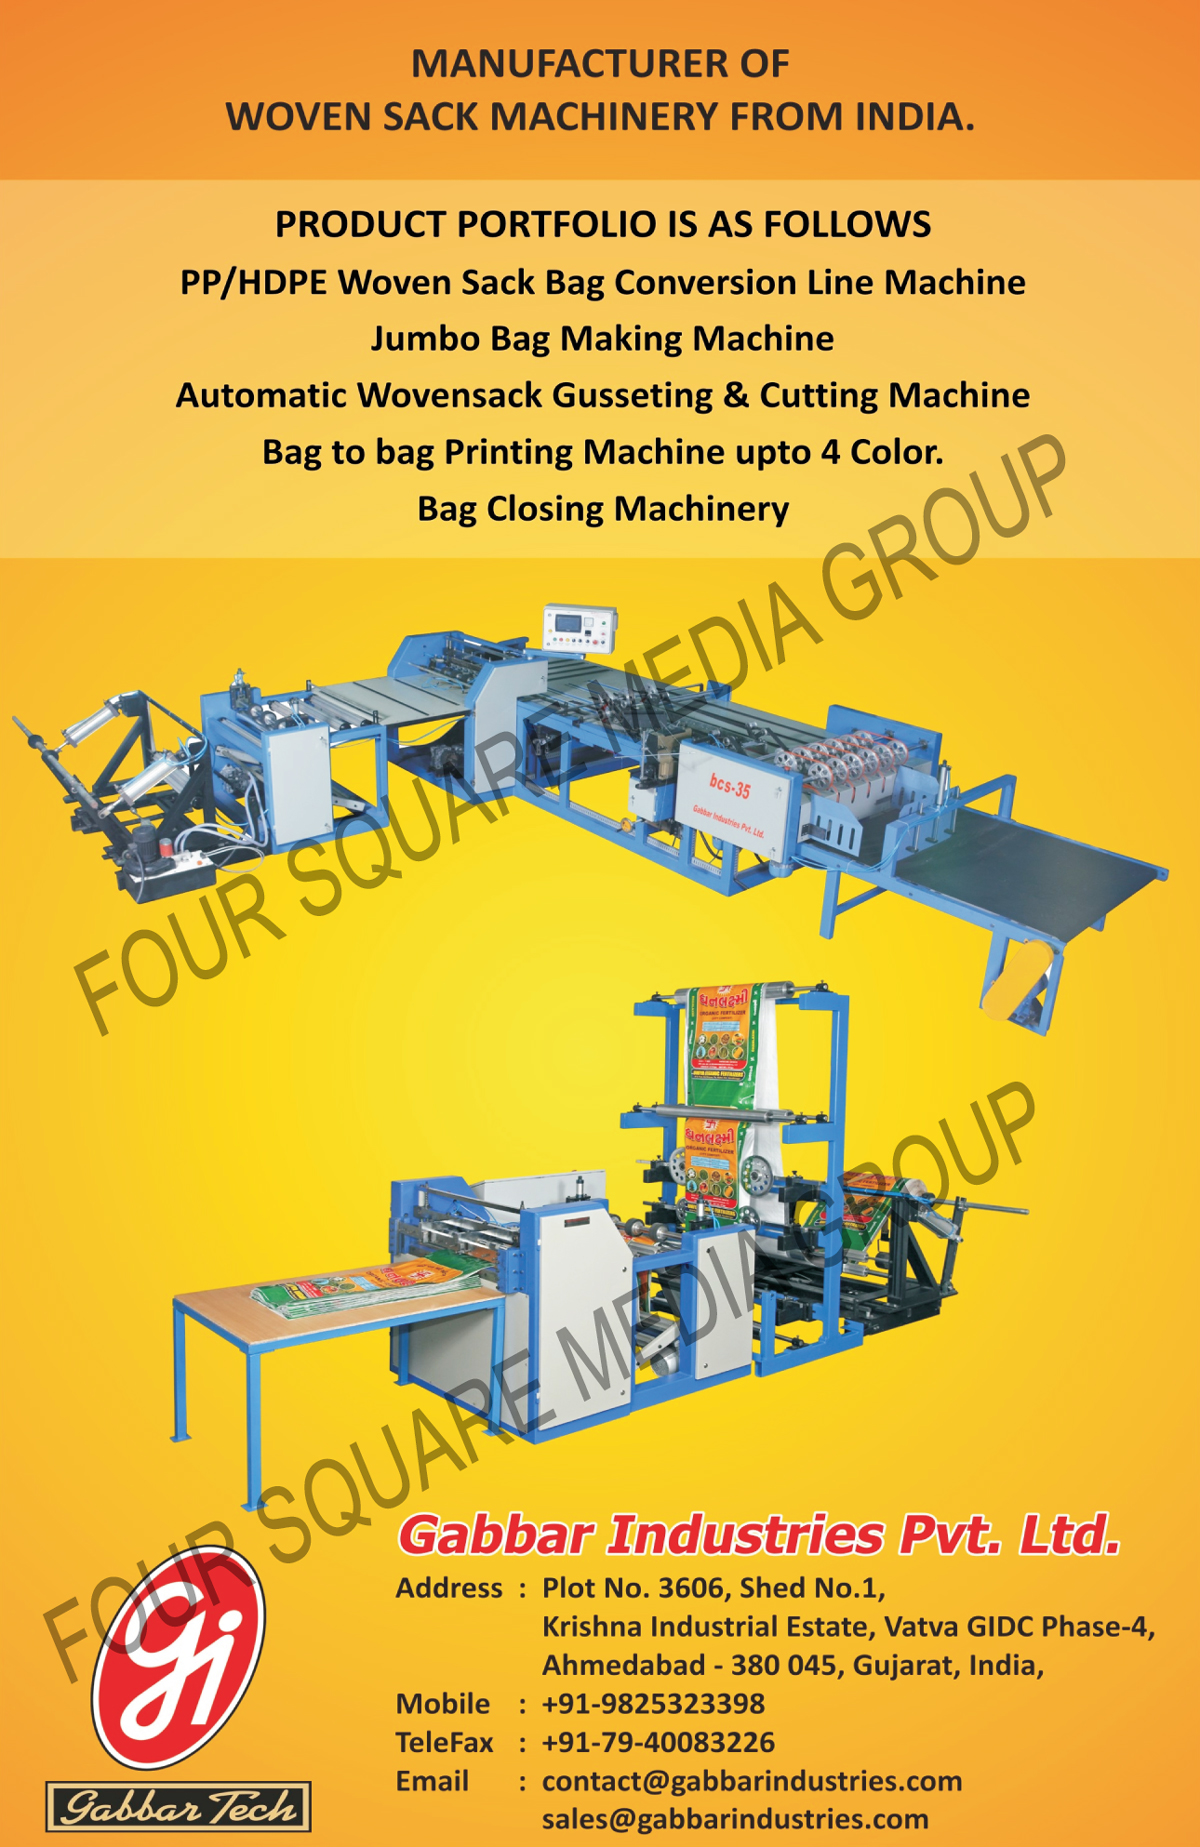 Woven Sack Machines, PP Woven Sack Bag Conversion Line Machines, HDPE Woven Sack Bag Conversion Line Machines, Jumbo Bag Making Machines, Automatic Woven Sack Gusseting Machines, Automatic Woven Sack Cutting Machines, Bag To Bag Printing Machines, Bag Closing Machines